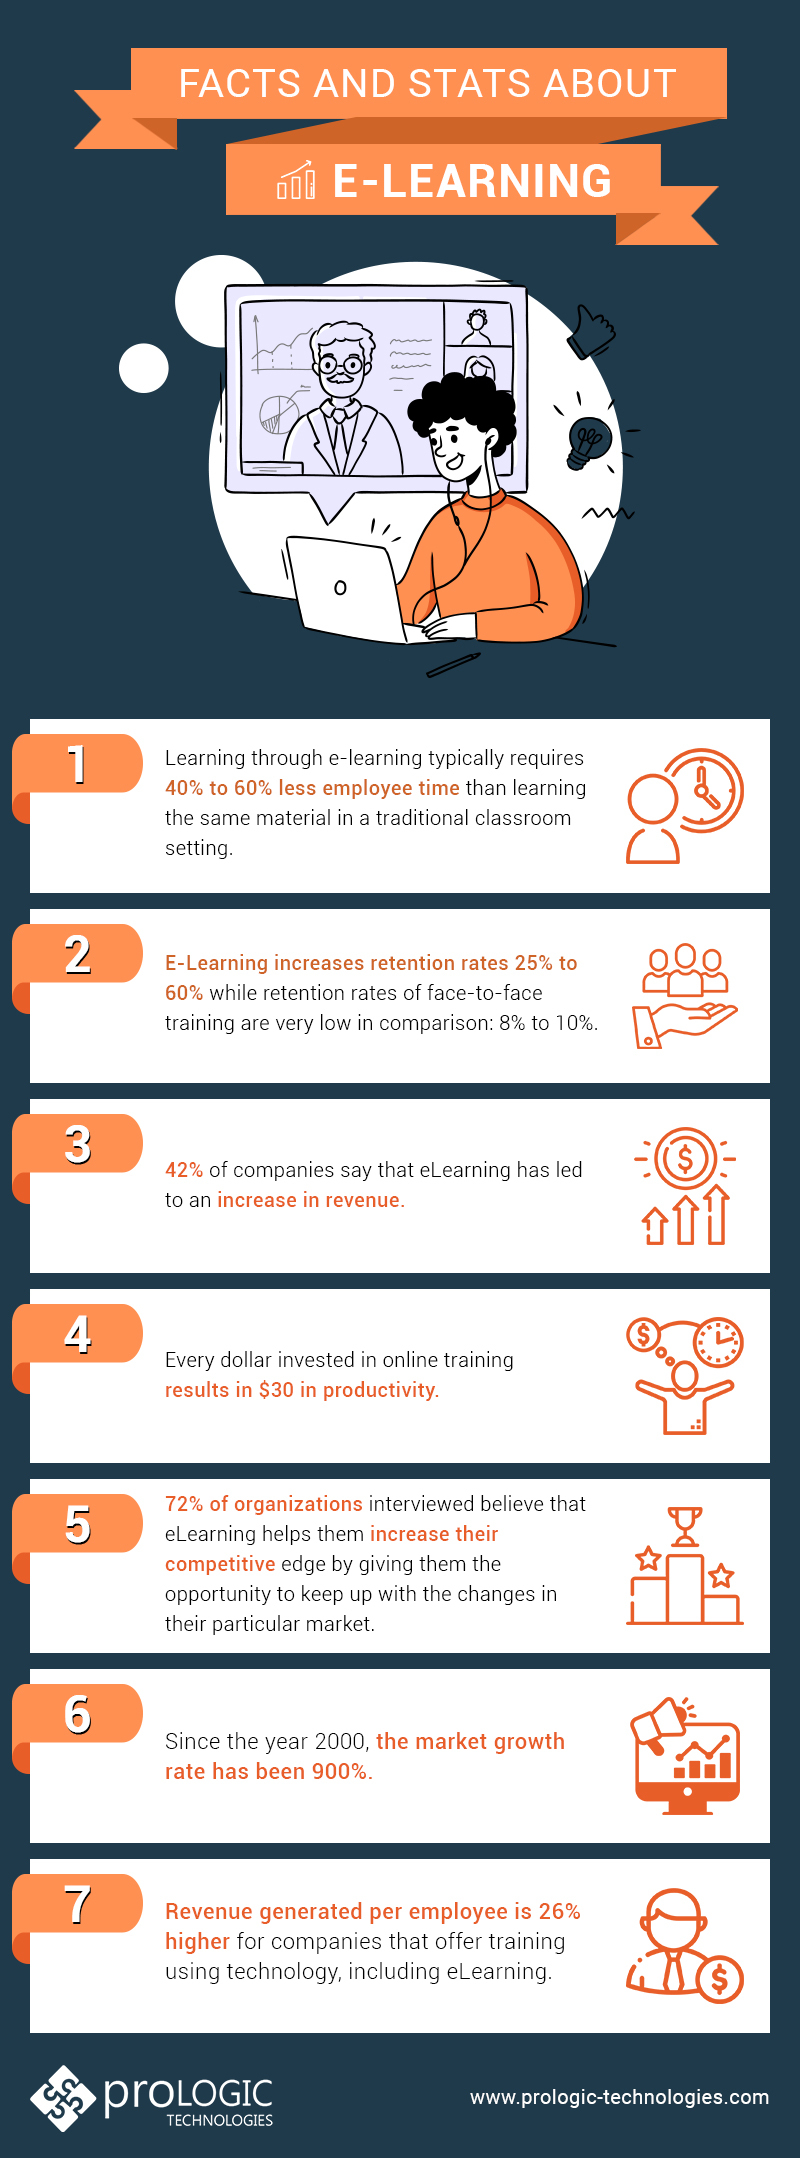 Facts about elearning